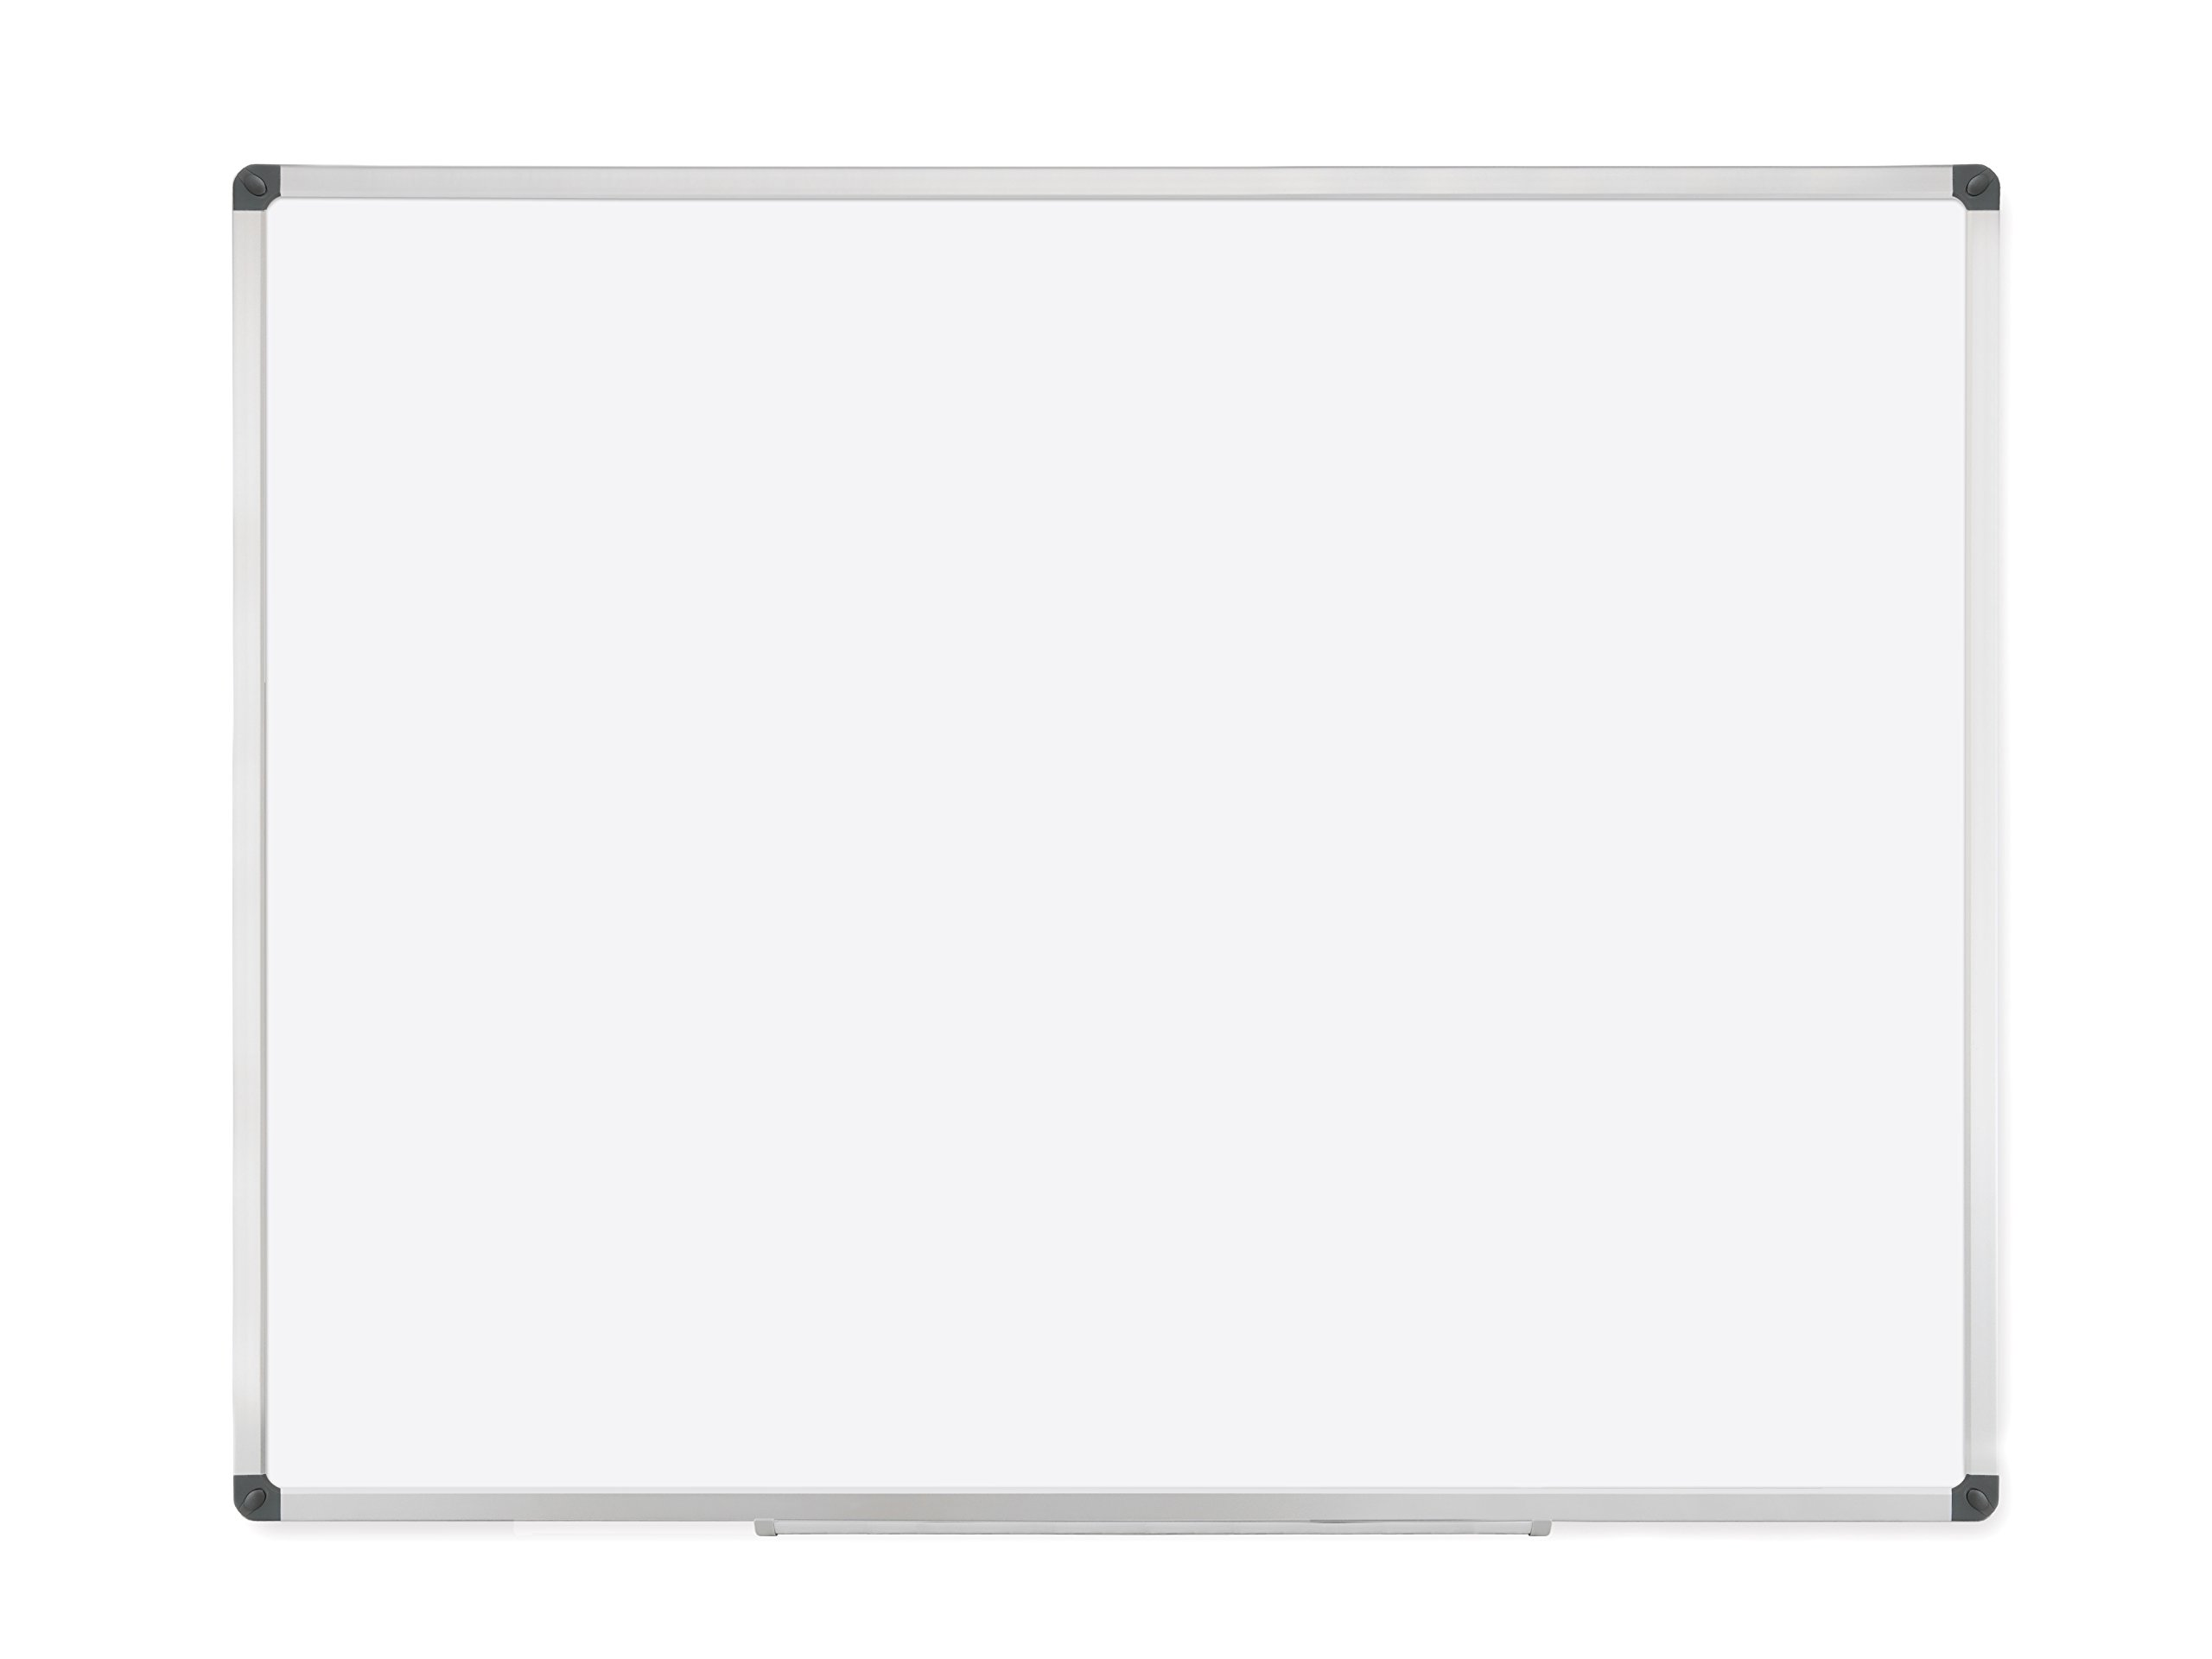 VAB-Pro Top Quality Melamine 36'' x 48'' dry erase white board, 4 corner mounting with pen tray, W313648-02 by V VAB-PRO